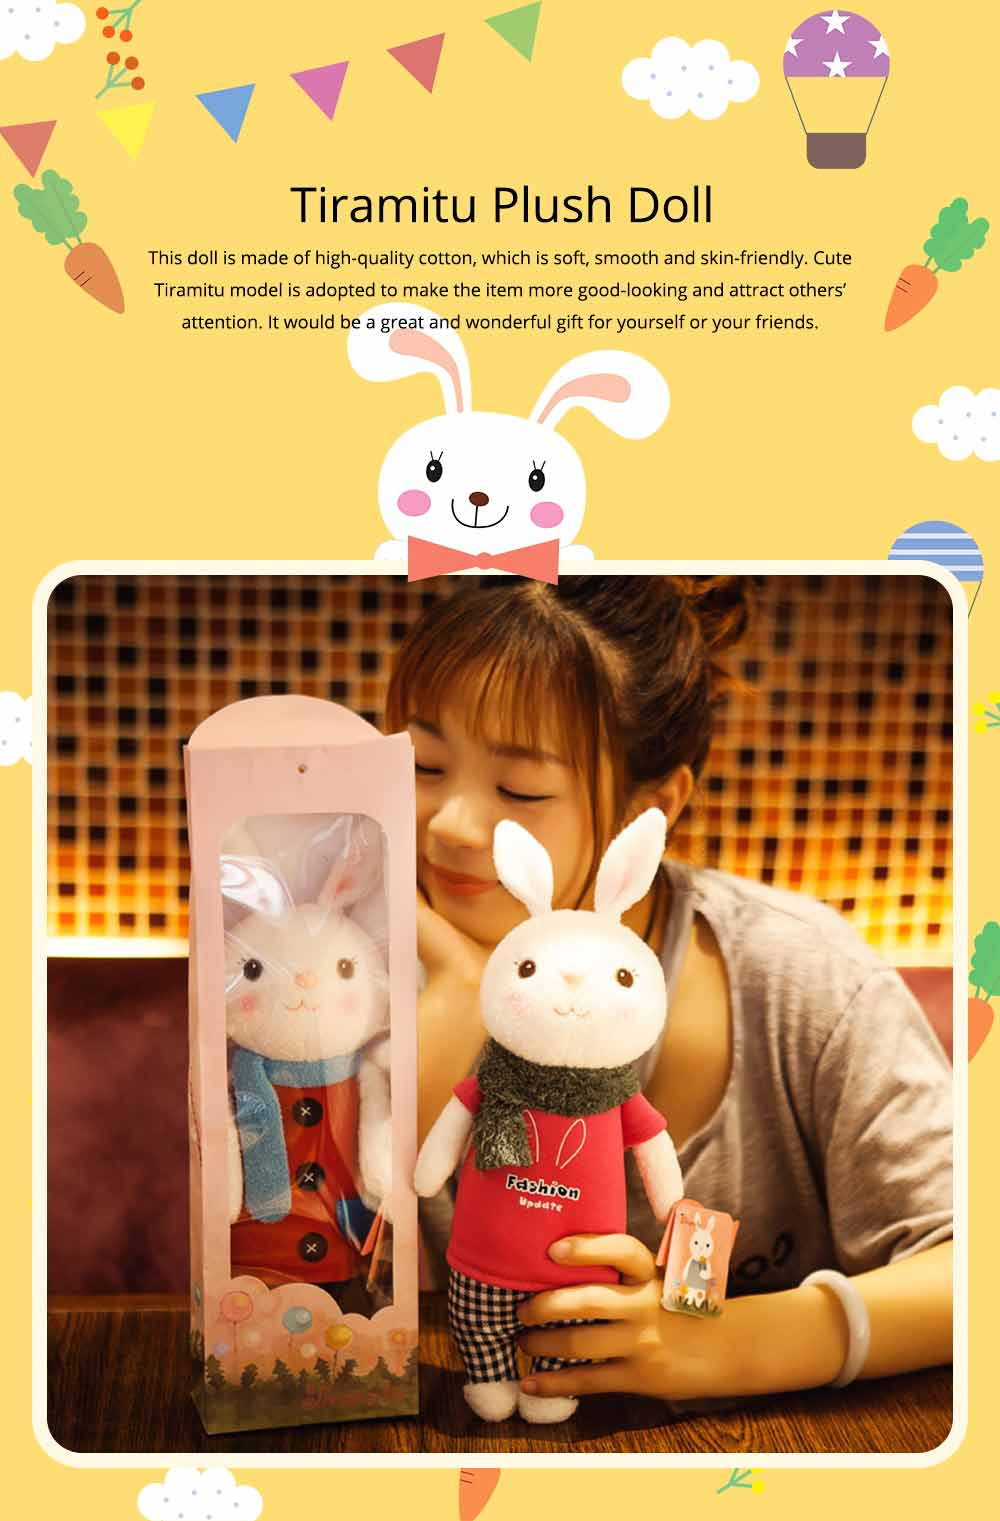 Cute Cartoon Tiramitu Rabbit Plush Stuffed Toy, Ultrasoft Smooth Children's Day Present Doll 0